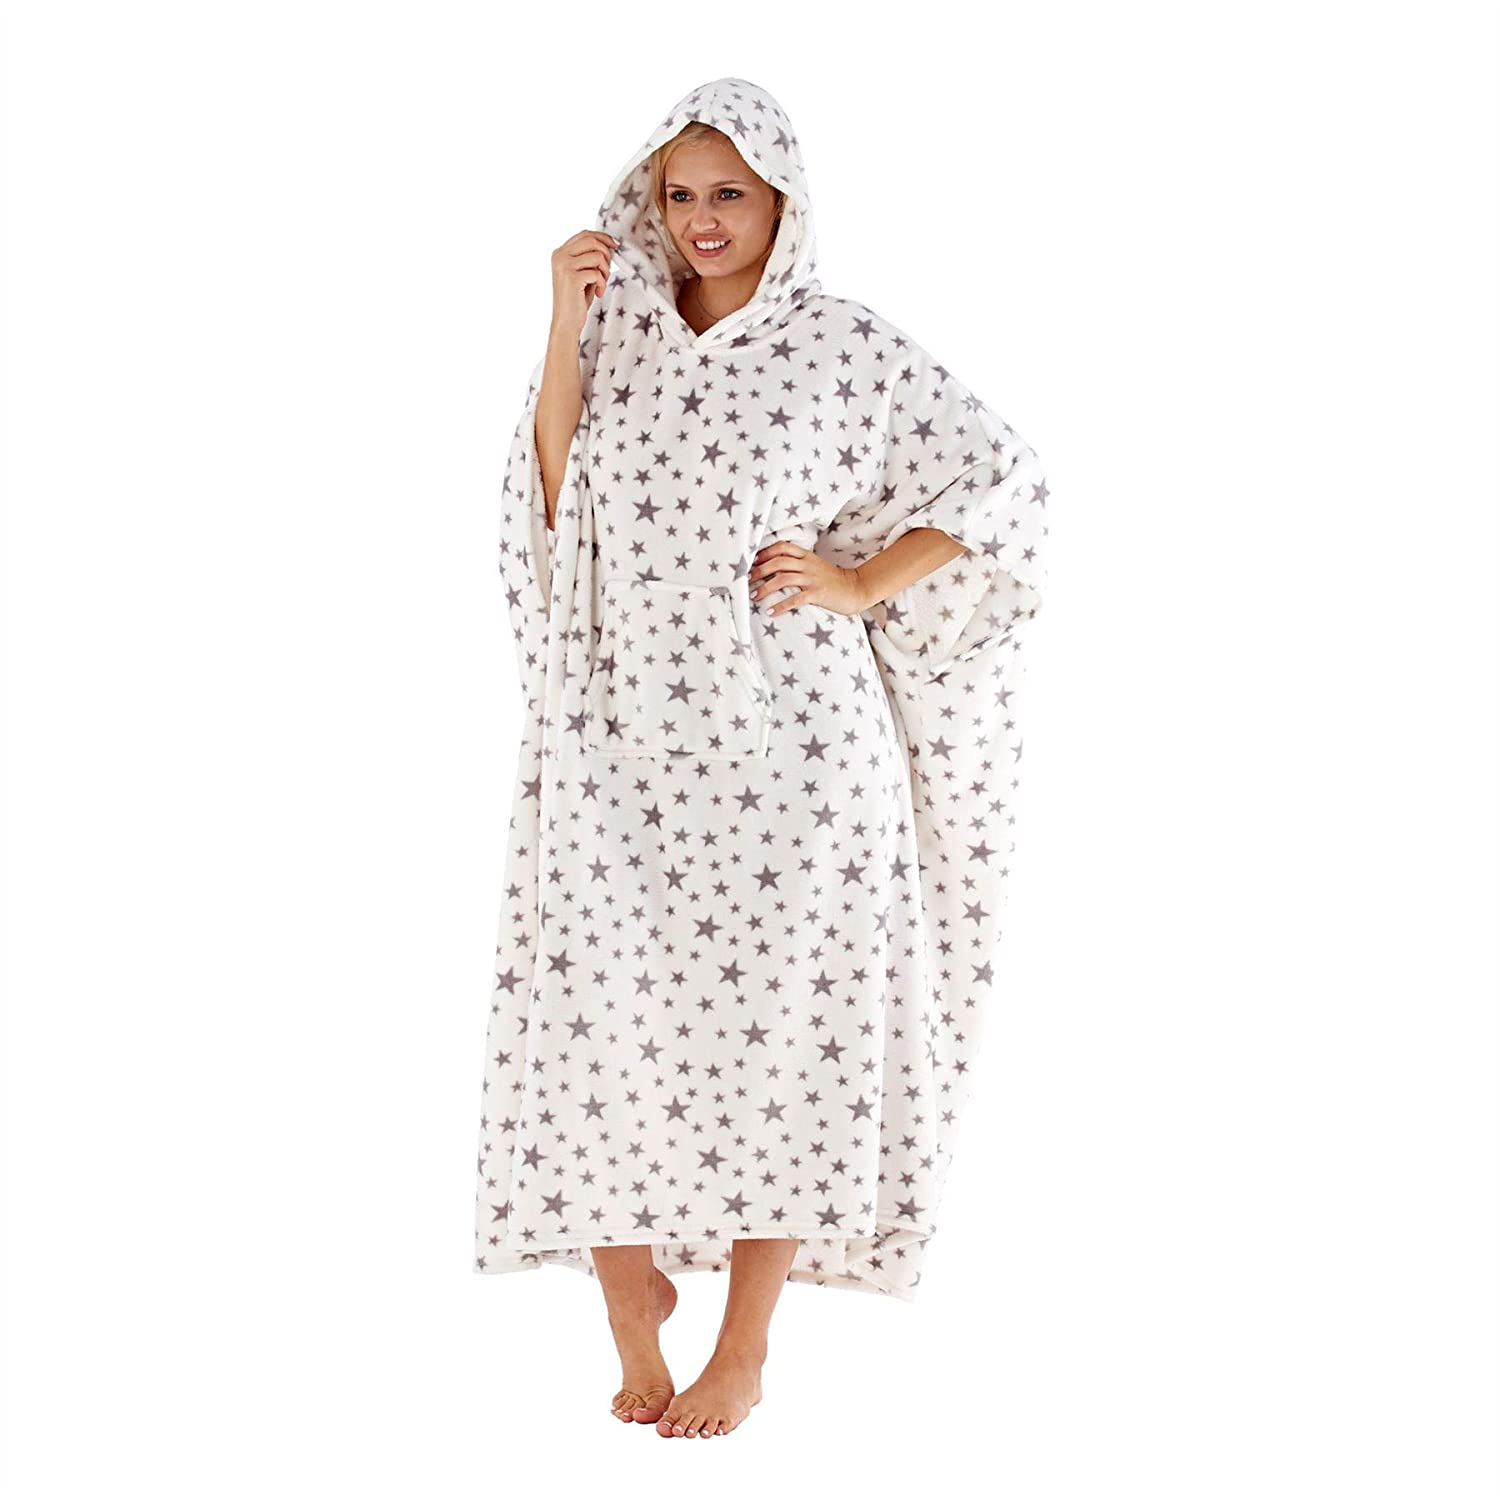 8a0e14719f Masq Ladies Womens Star Print Fleece Hooded Poncho Lounger Dressing Gown  Robe White One Size  Amazon.co.uk  Clothing